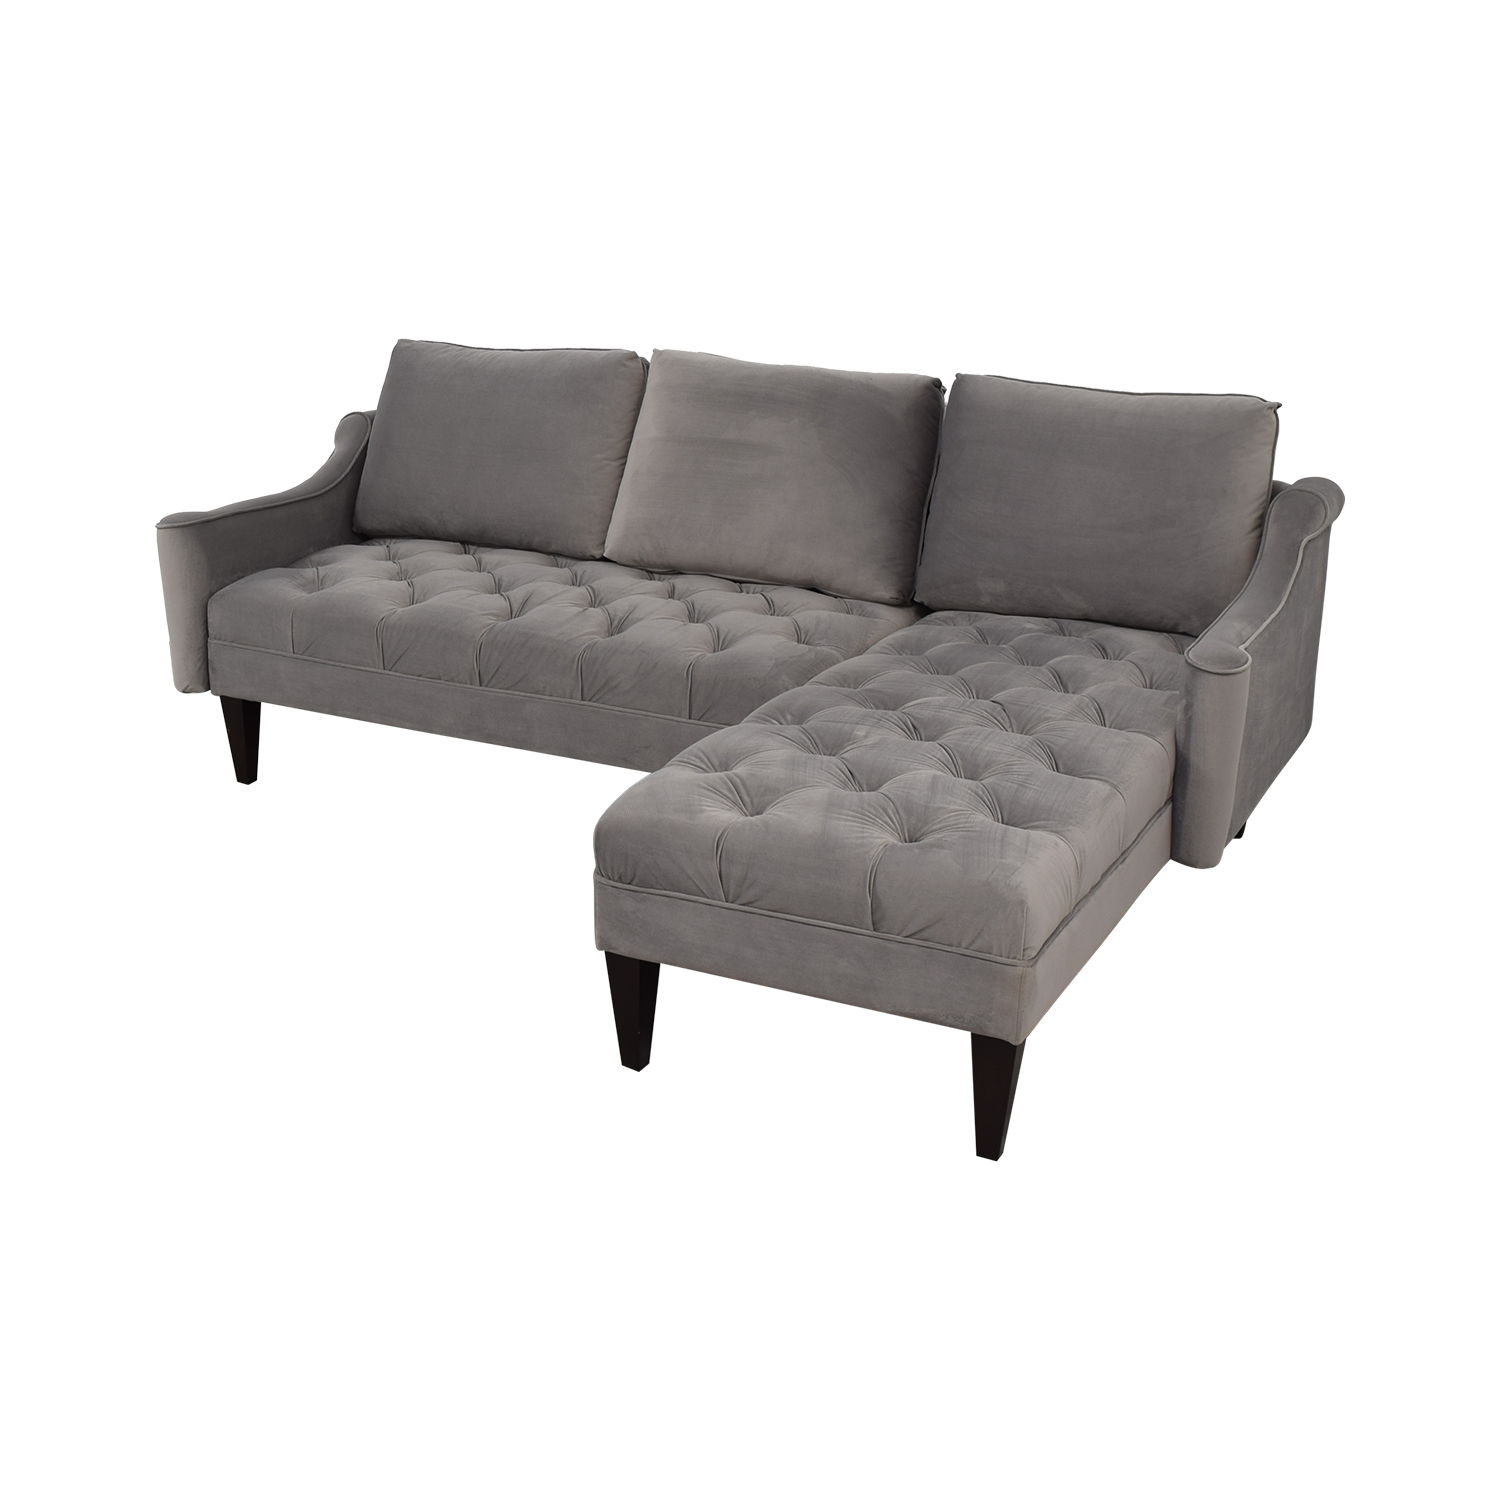 Awesome 71 Off Wayfair Wayfair Grey Tufted Chaise Sectional Sofas Spiritservingveterans Wood Chair Design Ideas Spiritservingveteransorg